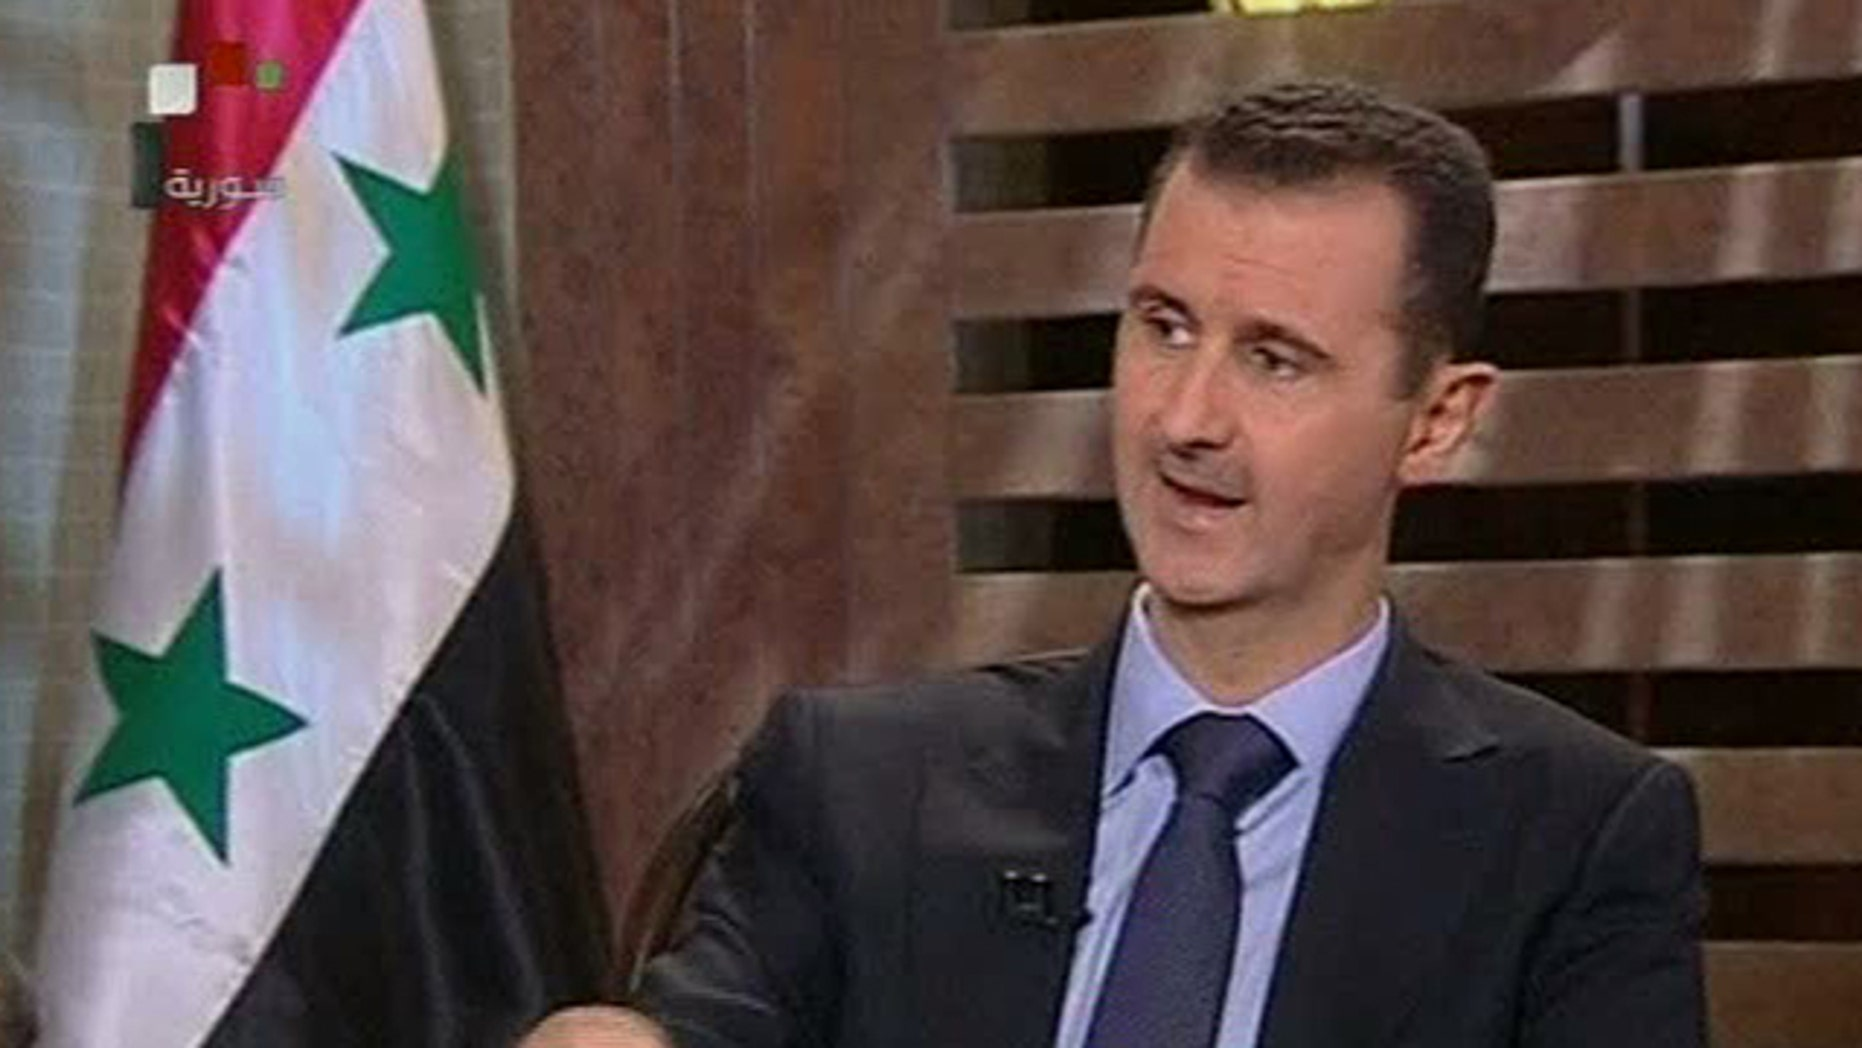 Syrian President Bashar Assad seen during a television interview in August 2011.